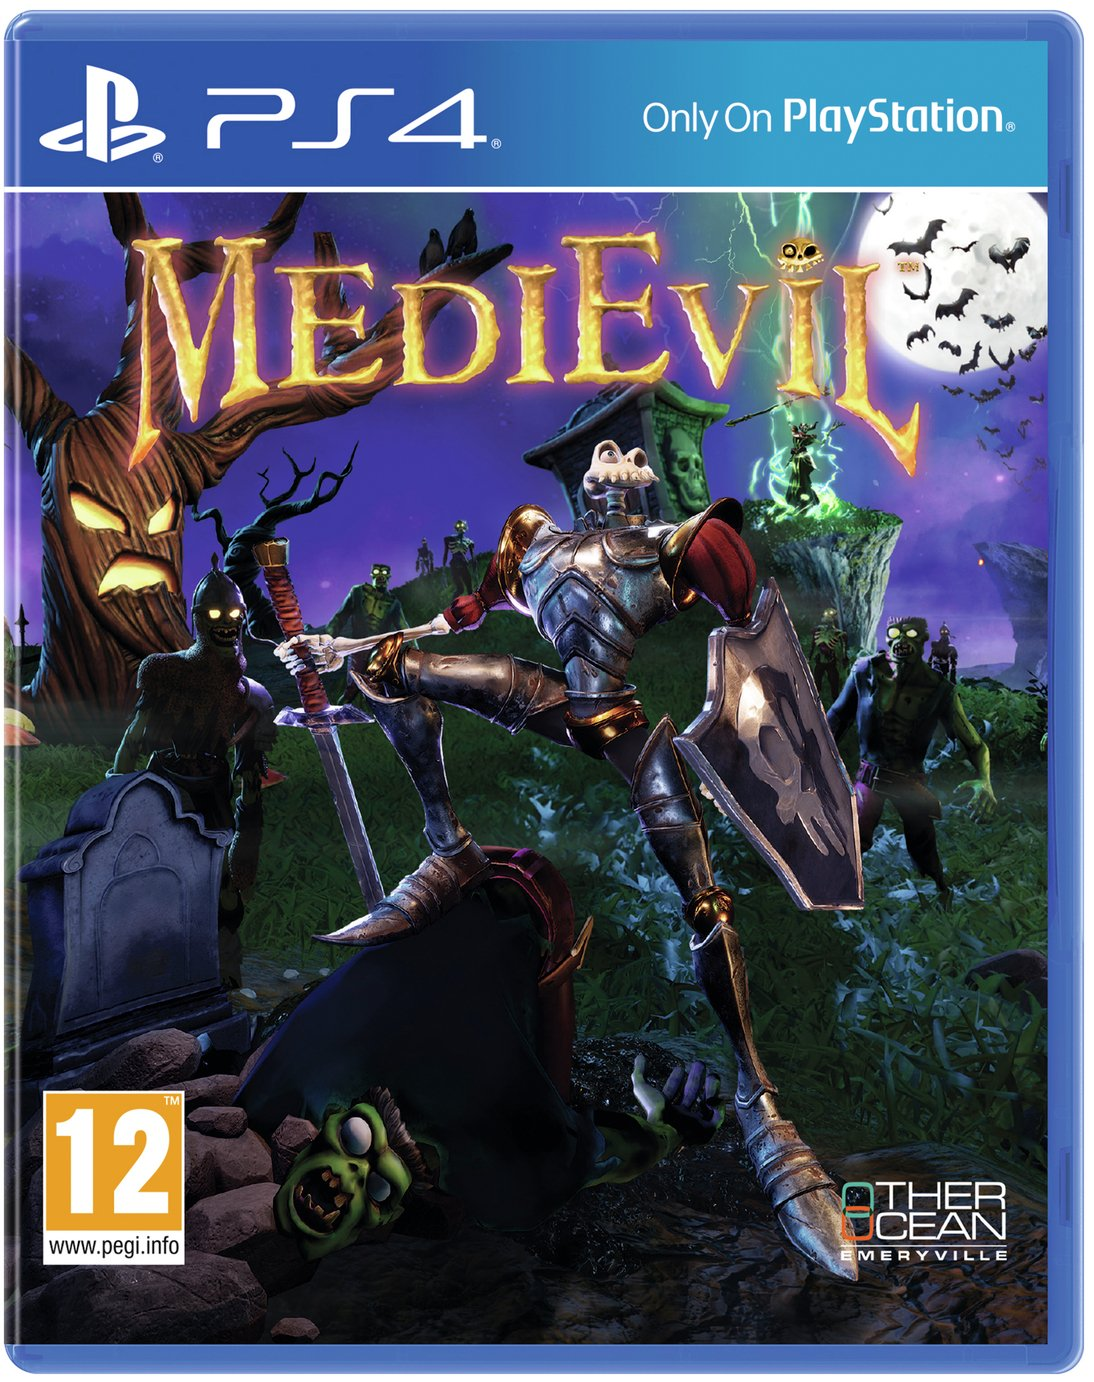 MediEvil PS4 Pre-Order Game